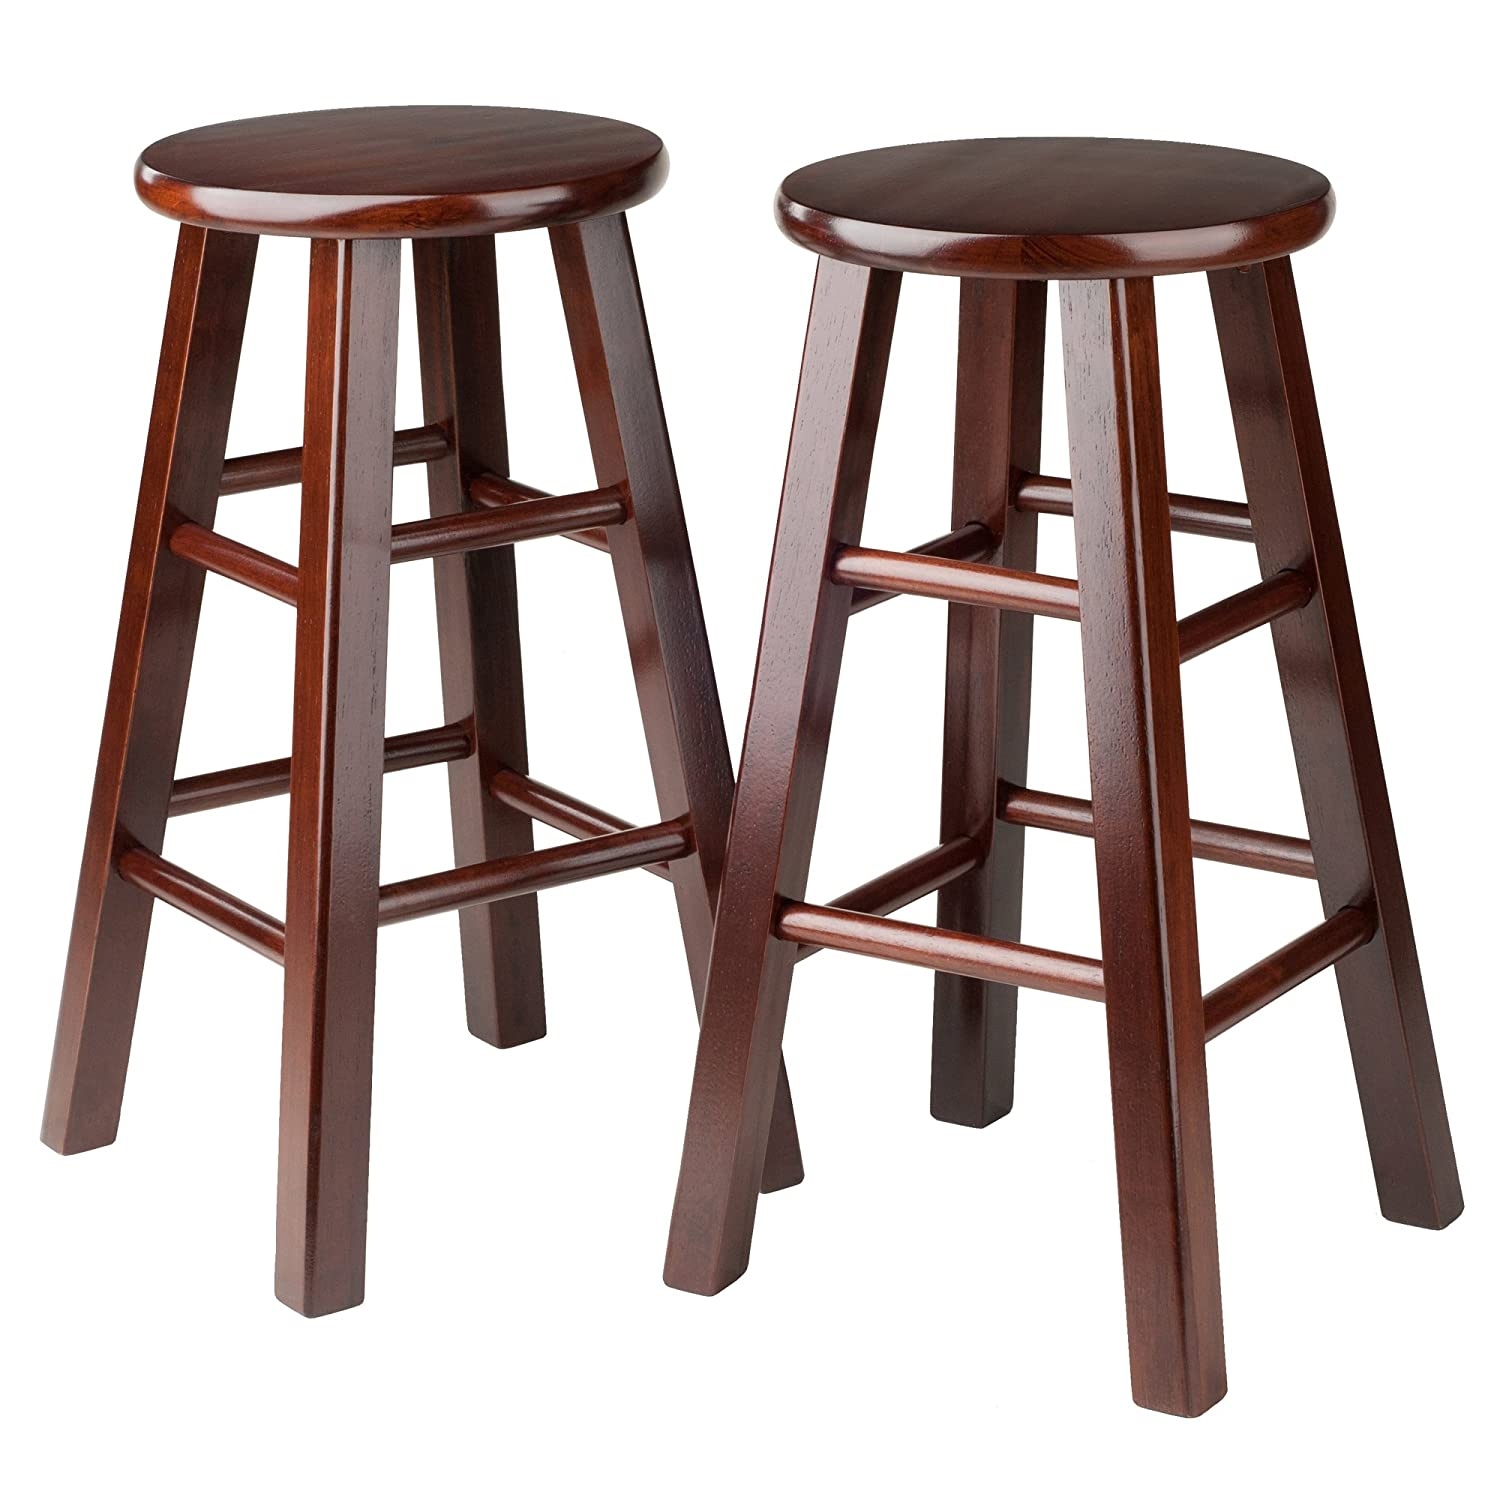 Winsome 24-Inch Square Leg Counter Stool, Black, Set of 2 Winsome Trading Inc. 20224